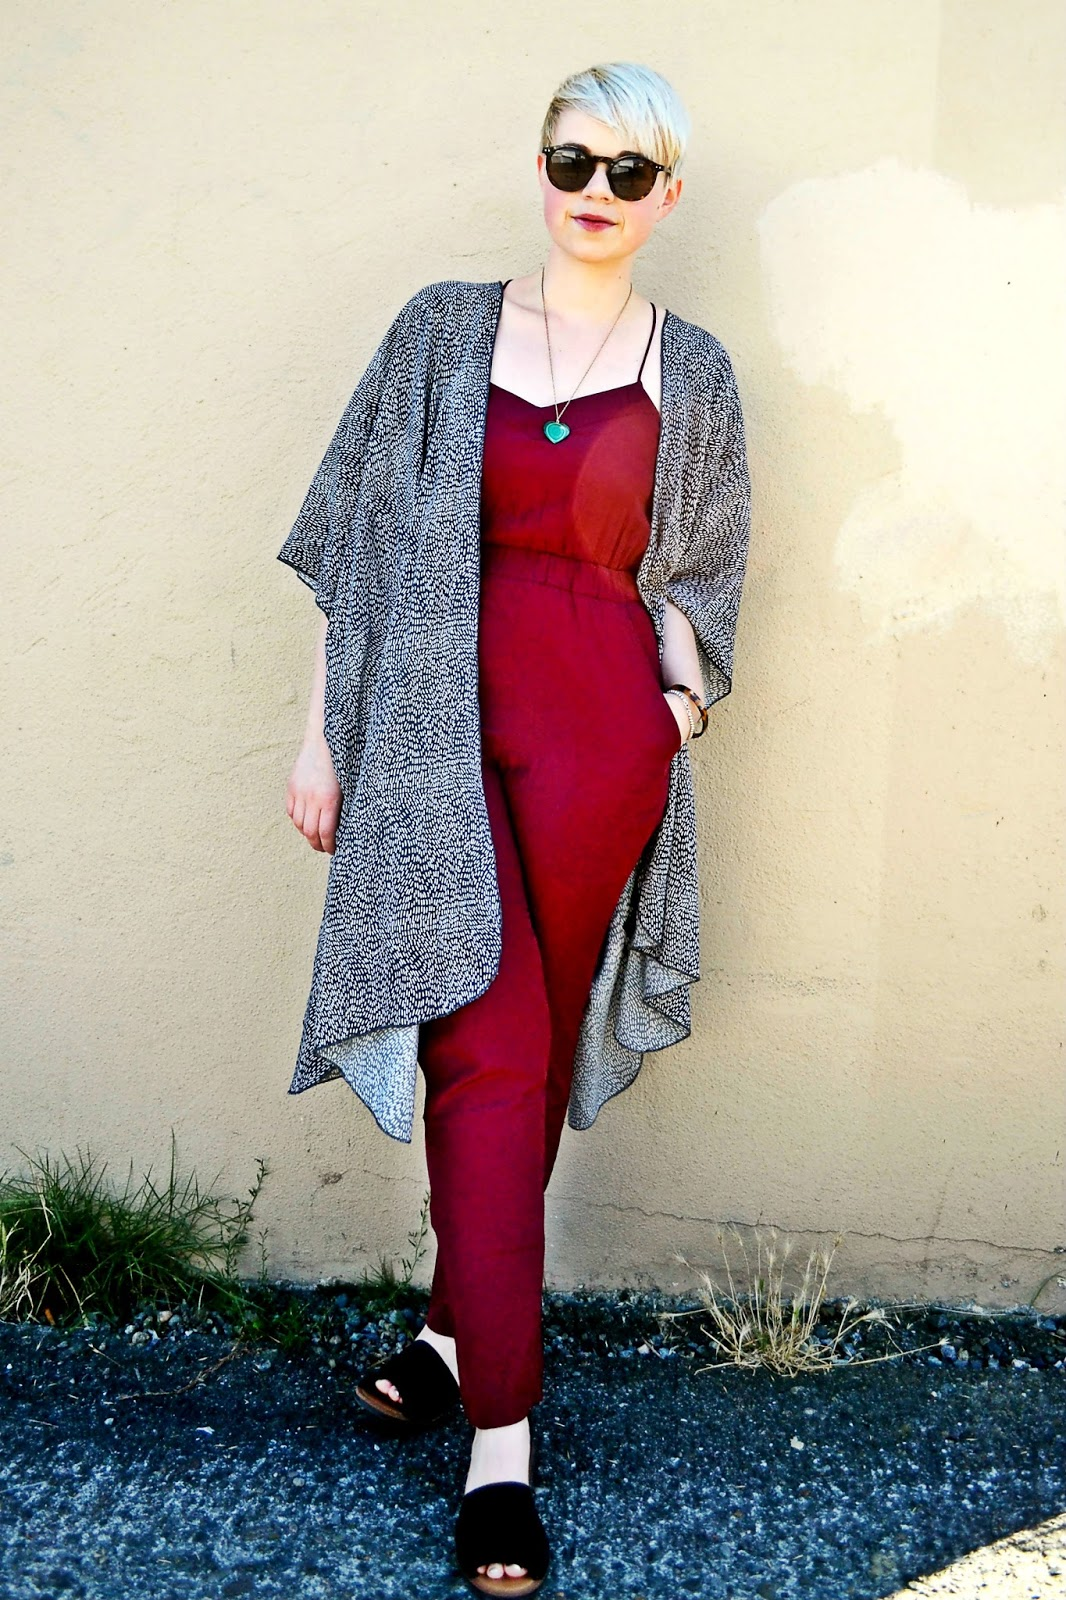 jewel tones, fall fashion, kimono, outfit ideas, look of the day, fleur d'elise, oasap, seattle, street style